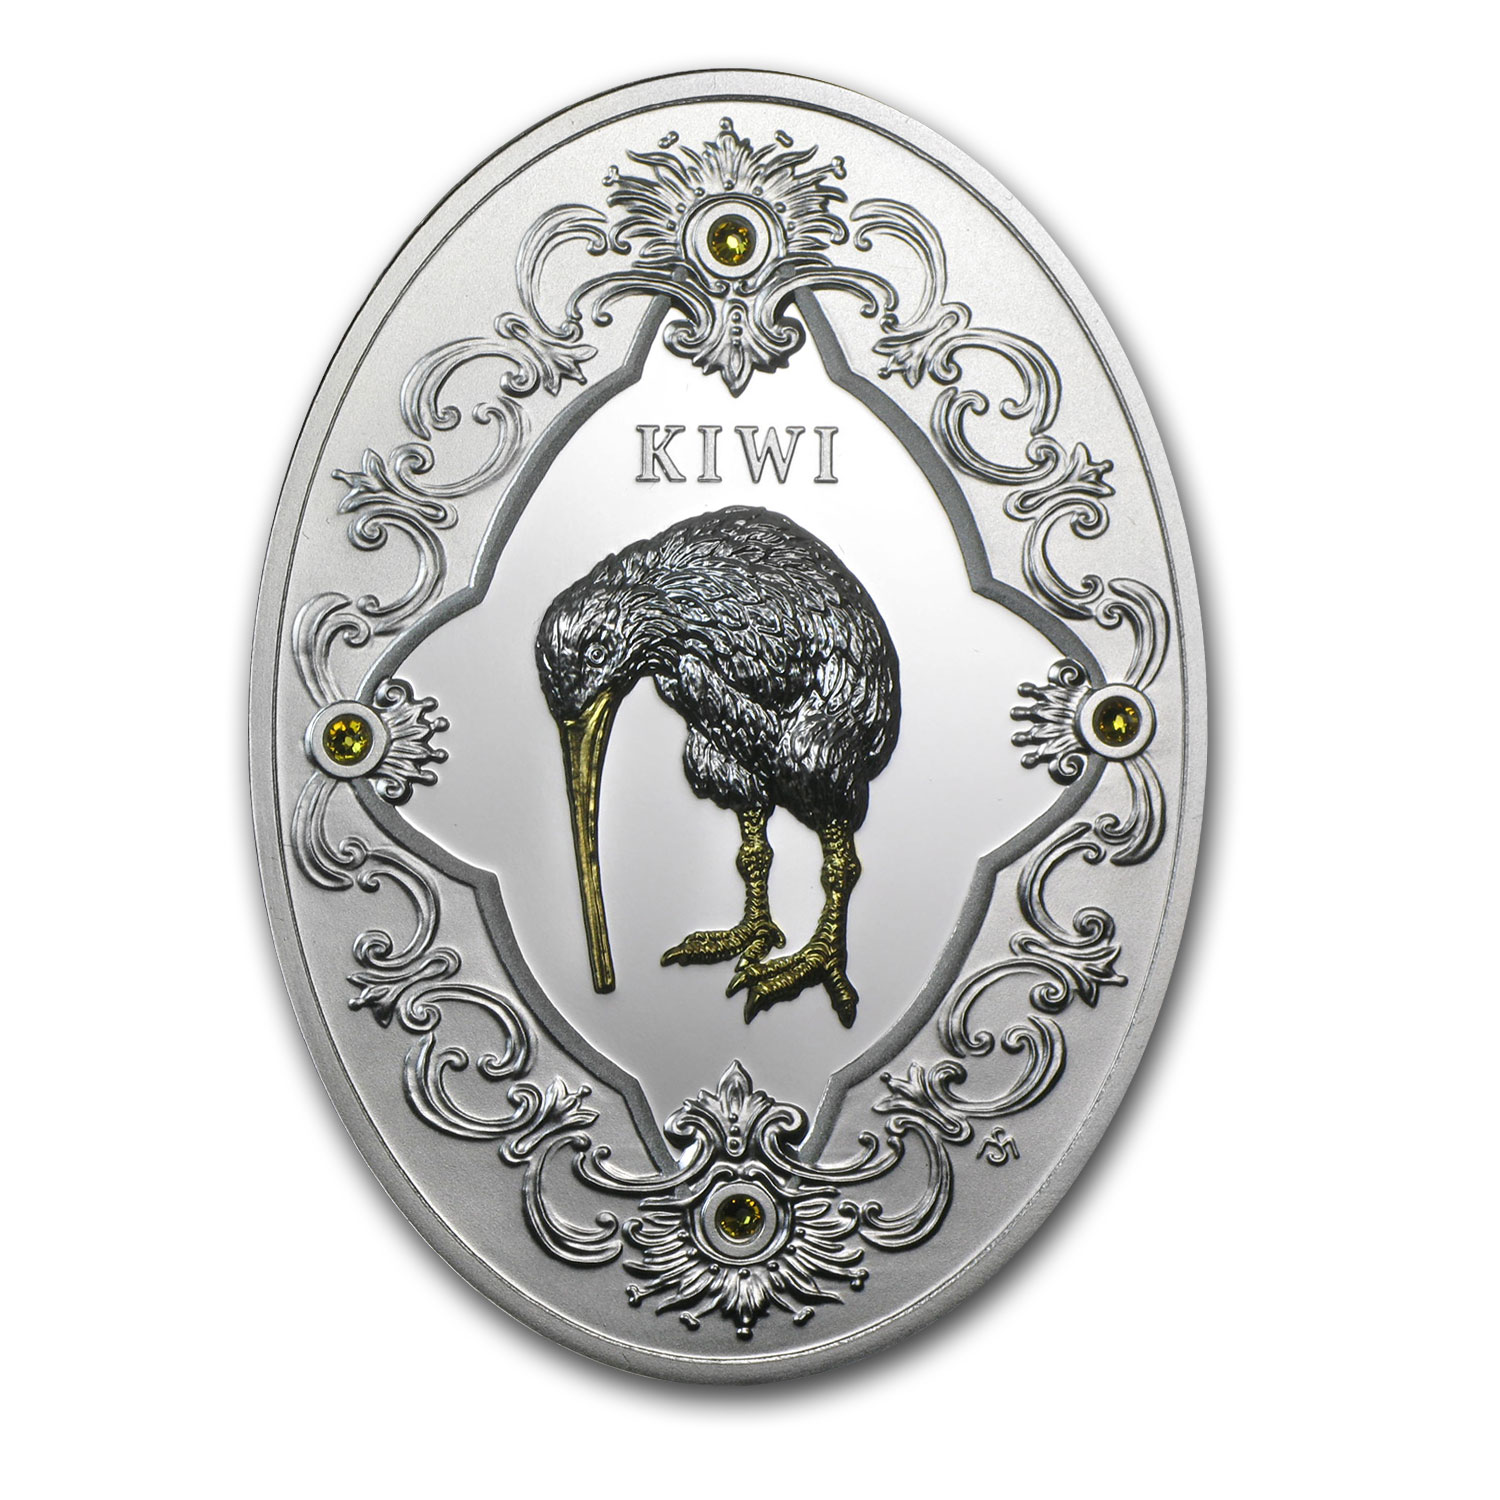 Niue 2014 Silver Proof Royal Faberge Gift - Kiwi